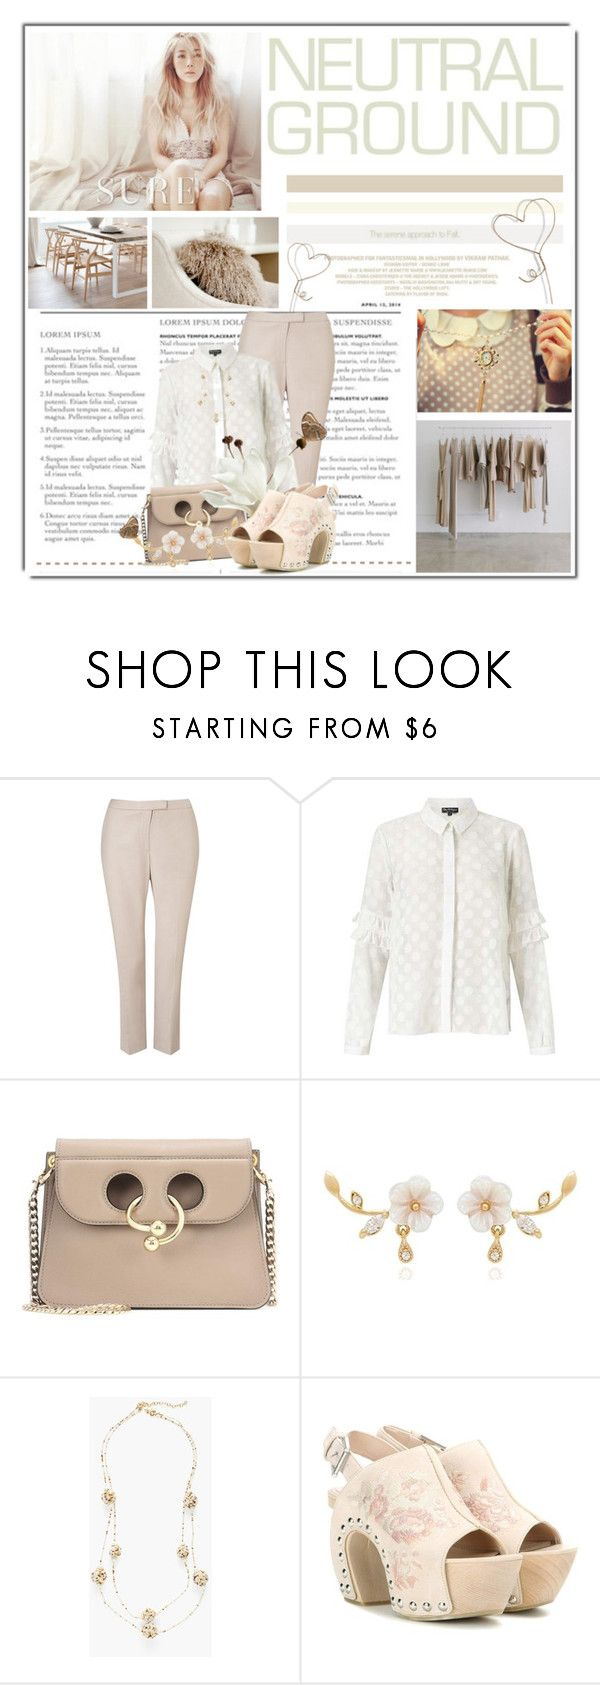 """""""Untitled #10960"""" by queenrachietemplateaddict ❤ liked on Polyvore featuring Shaina Mote, Precis Petite, Miss Selfridge, J.W. Anderson, Chico's and Alexander McQueen"""